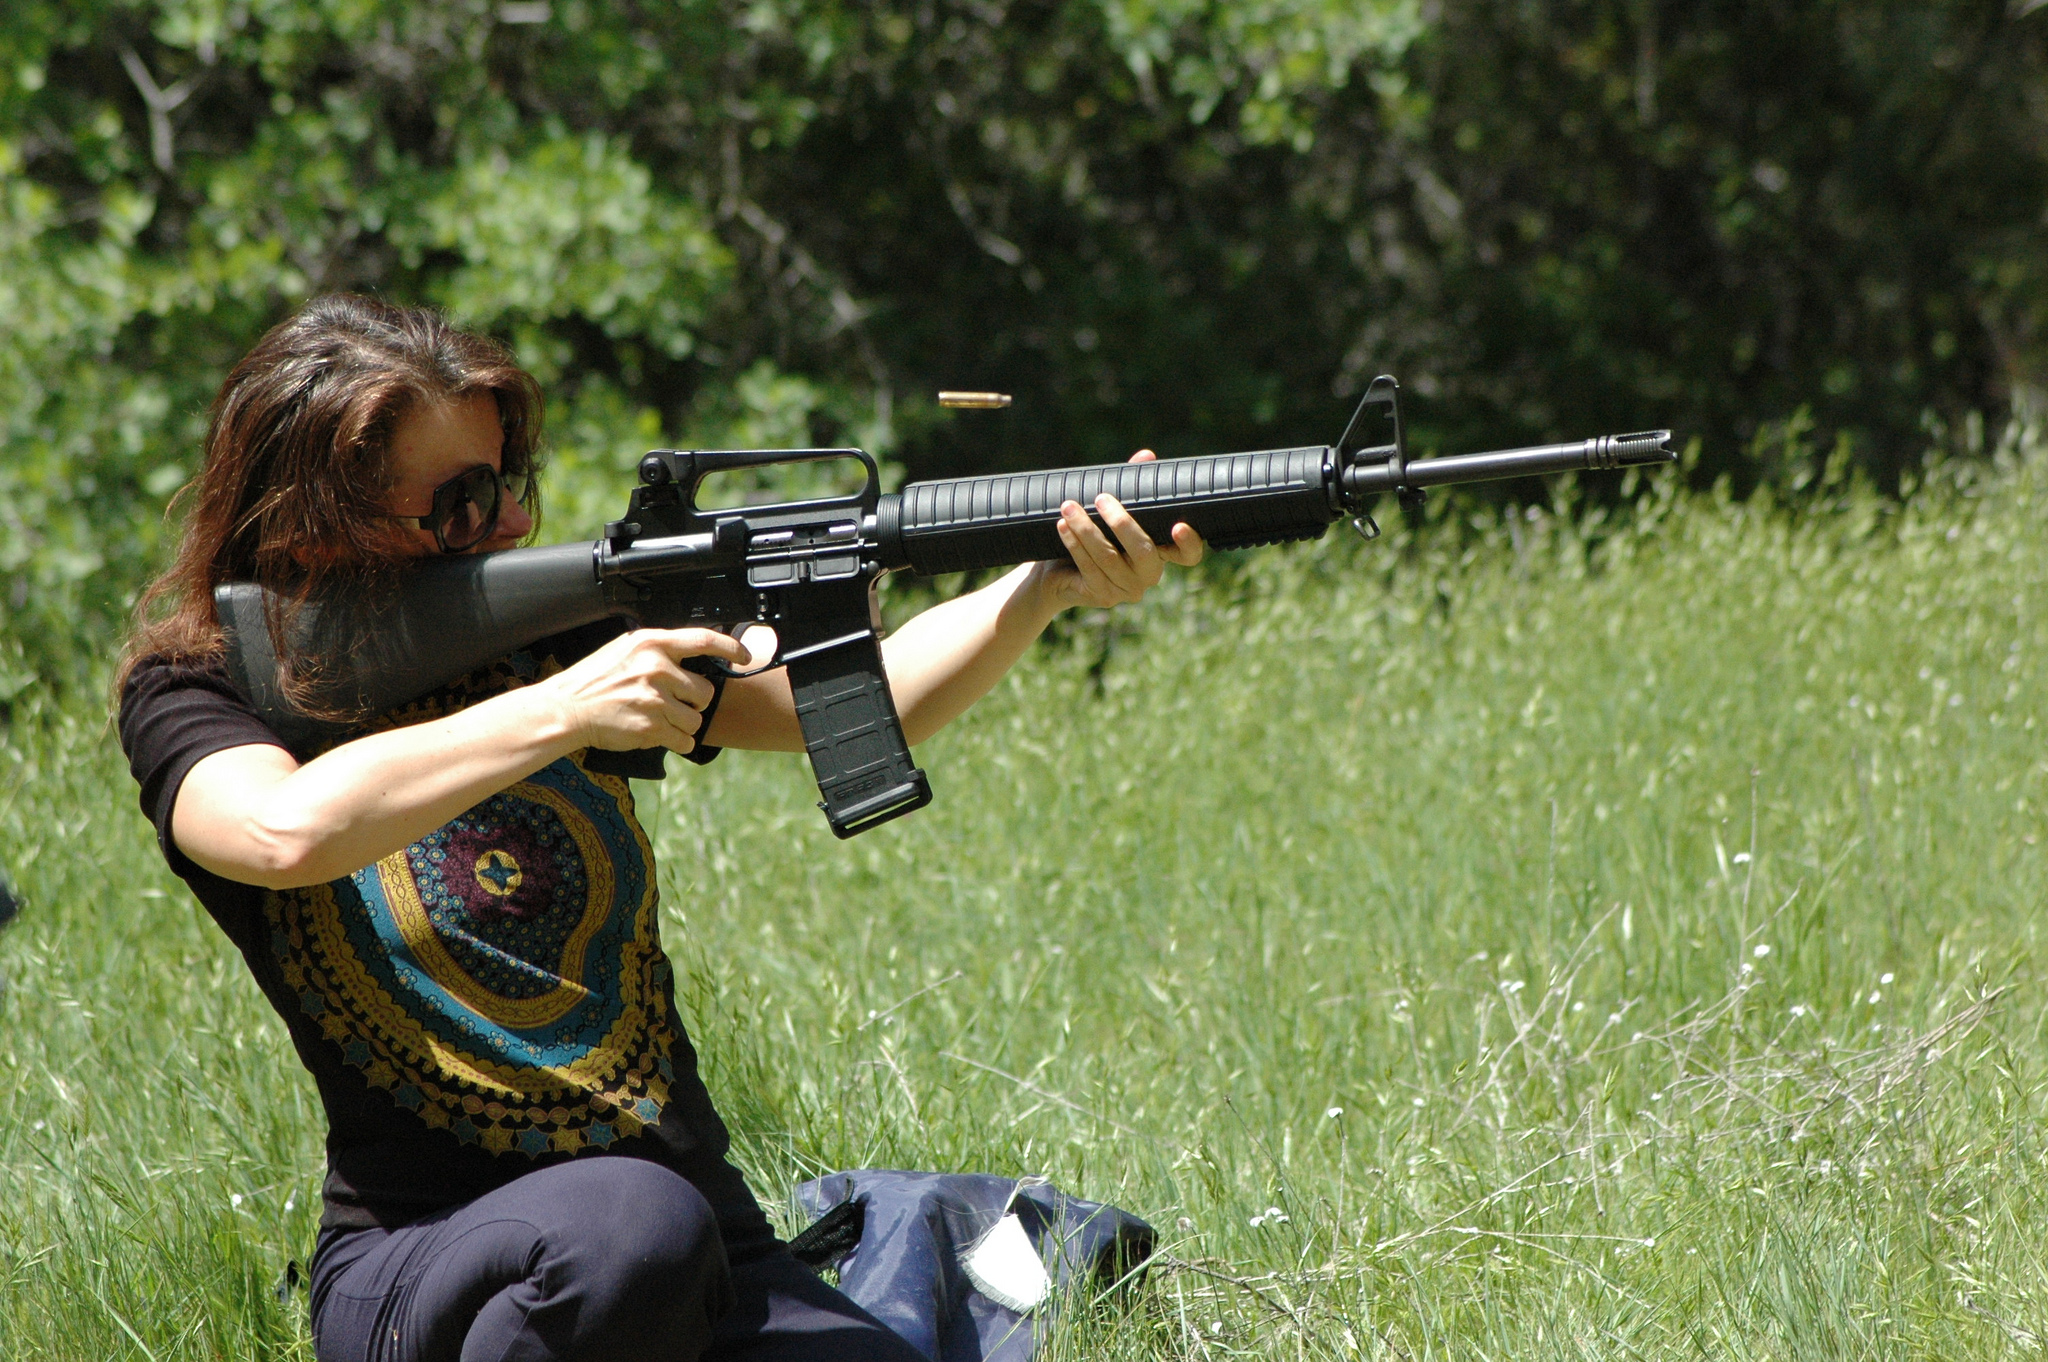 Court Maryland Gun Owners Have Constitutional Right To